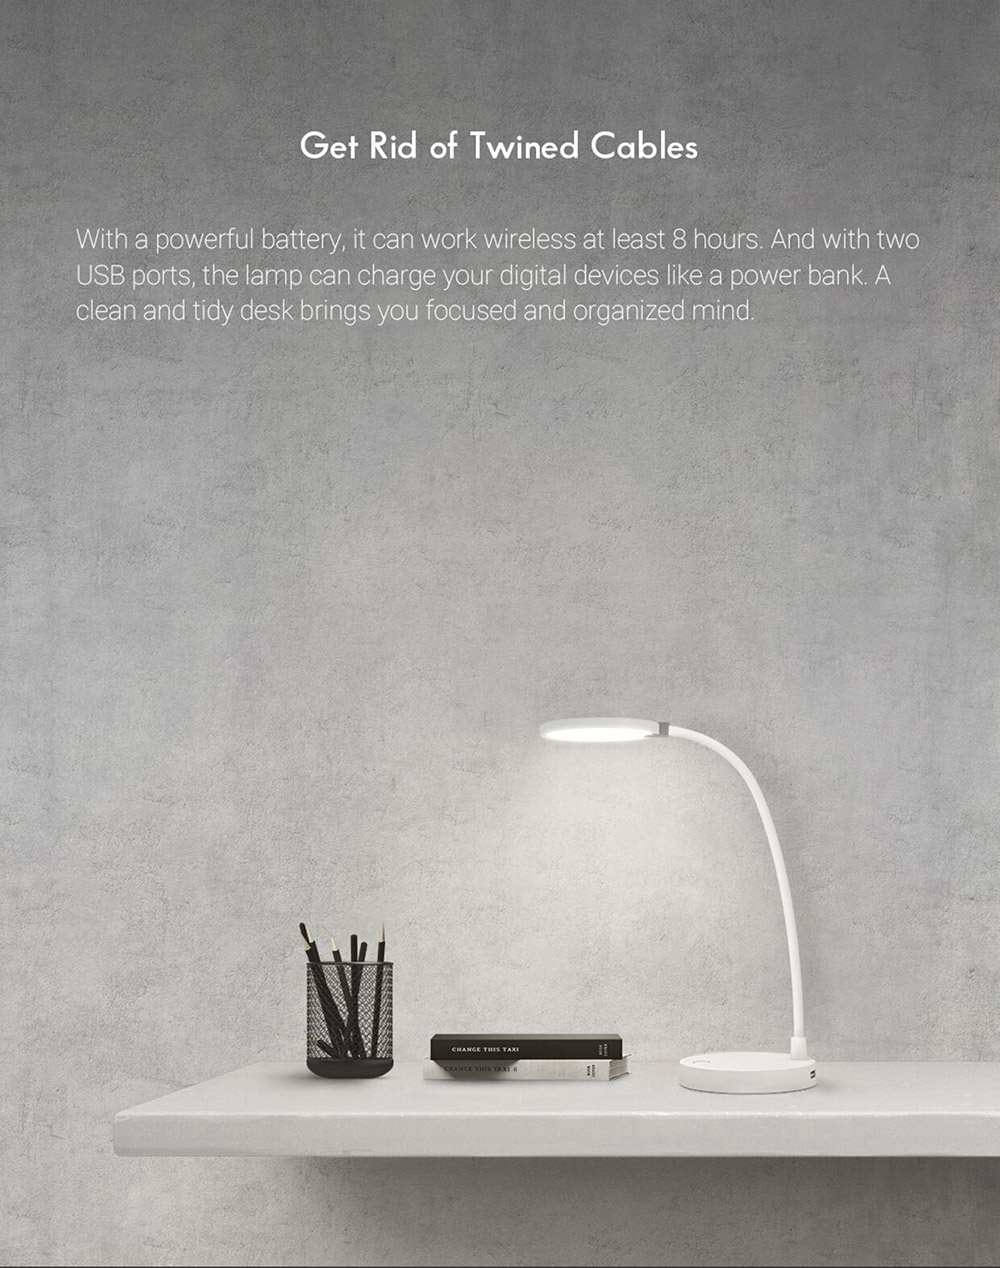 Coowoo U1 Intelligent Led Desk Lamp From Xiaomi Youpin 2699 Free Curved Circuit Board Art Make A Touchless Touchswitch 6 Mijia With Light Sensor Wireless Eye Protecting Function 100